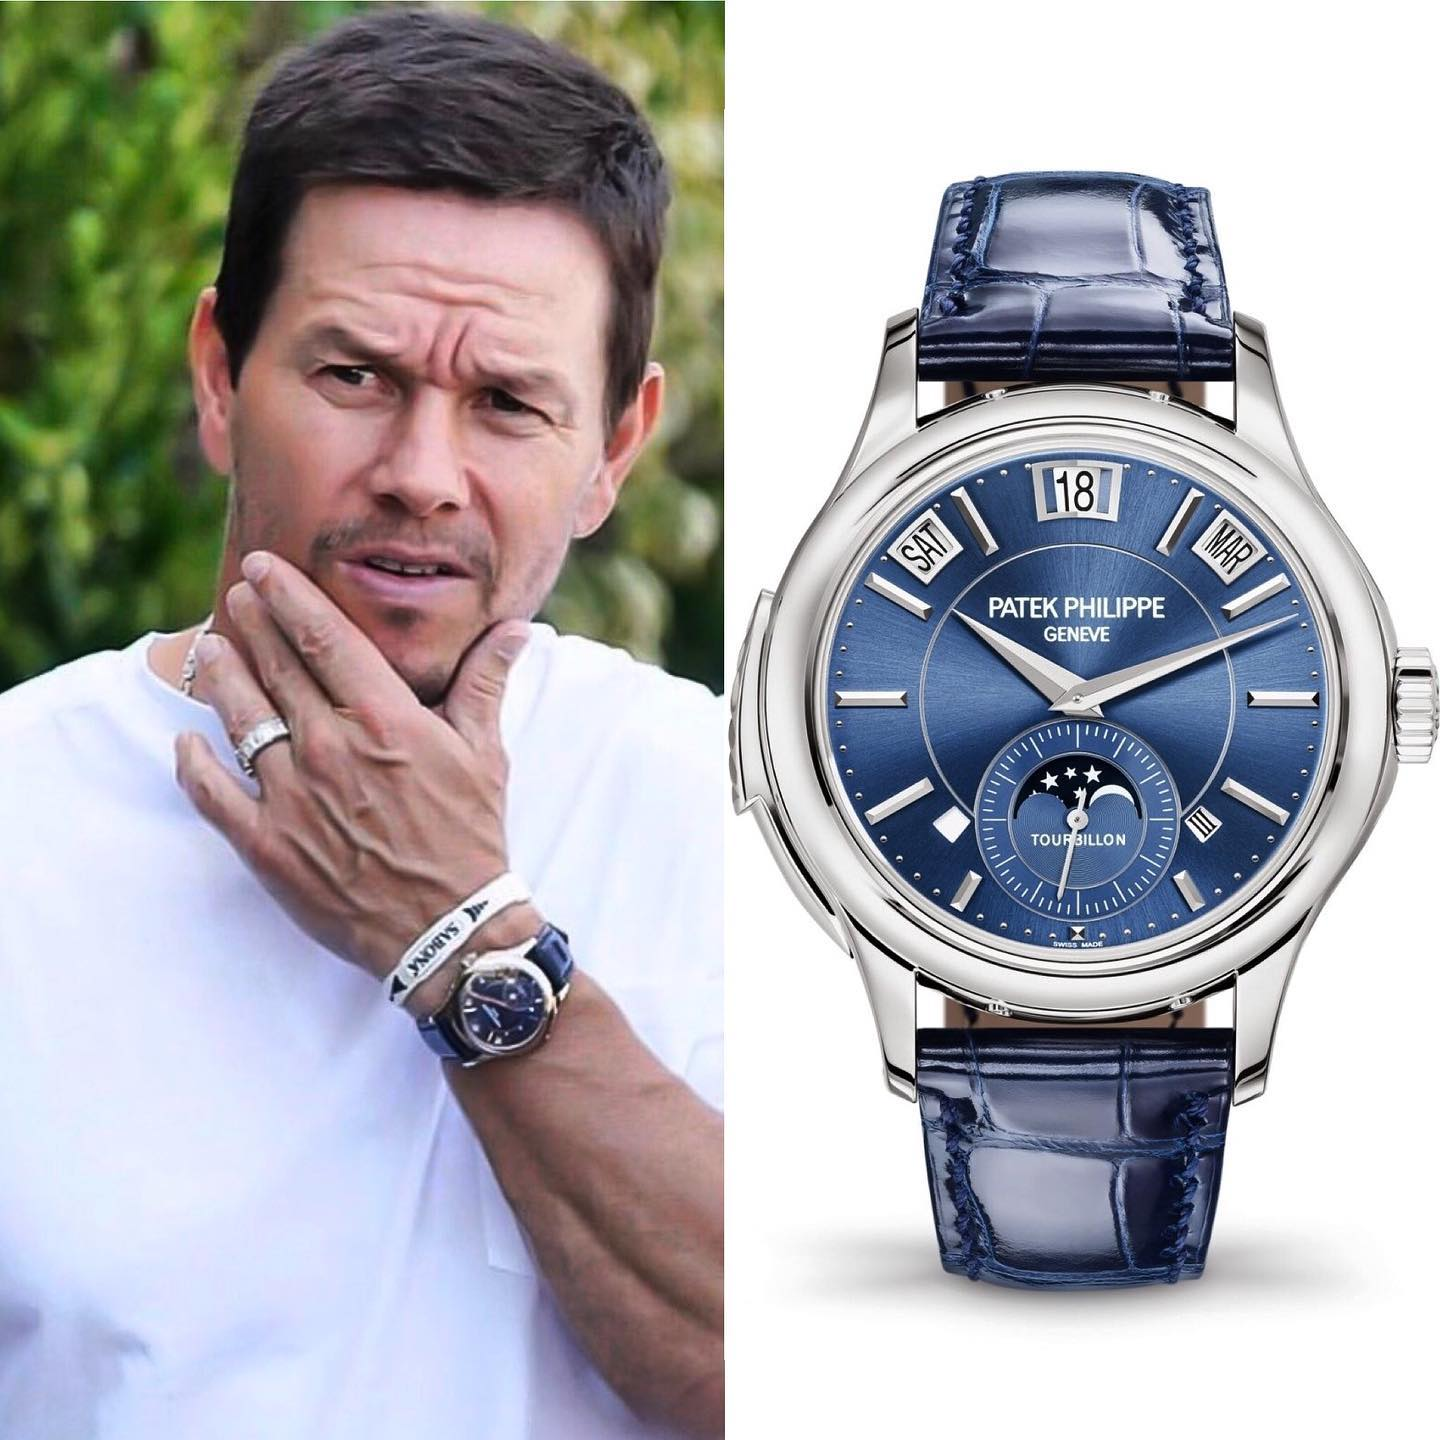 One of Hollywood's greatest stars @markwahlberg 🕺🏻spotted with a rare Patek Philippe 5207G-001 Tourbillon Perpetual Calendar in white gold with a blue dial. His watch collection is indeed outstanding! ️ 1,000,000.00 📸 @superwatchman